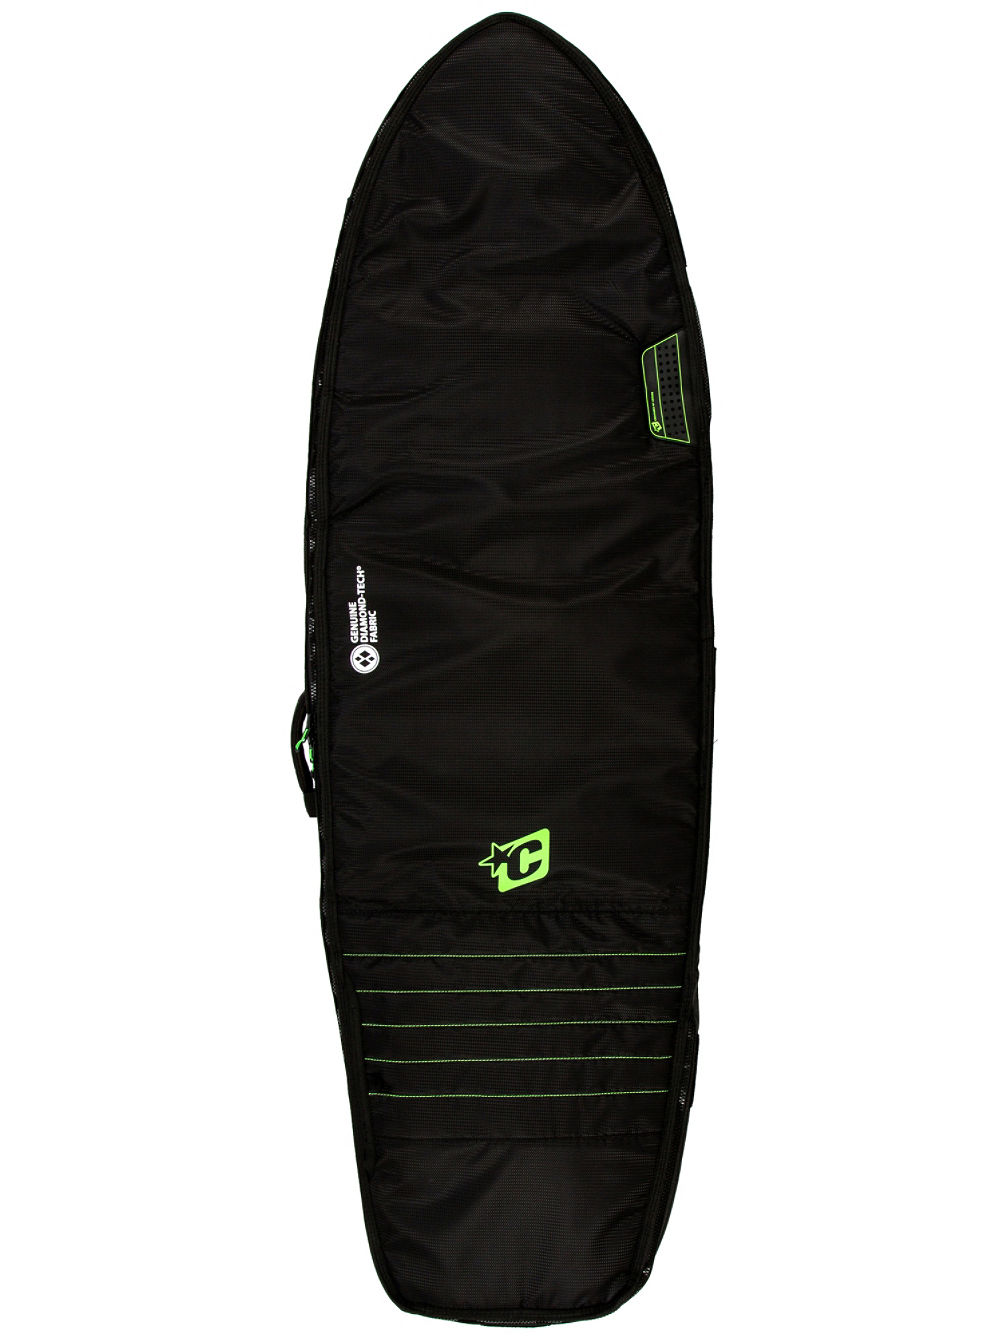 Fish Double 6'7 Boardbag Surf